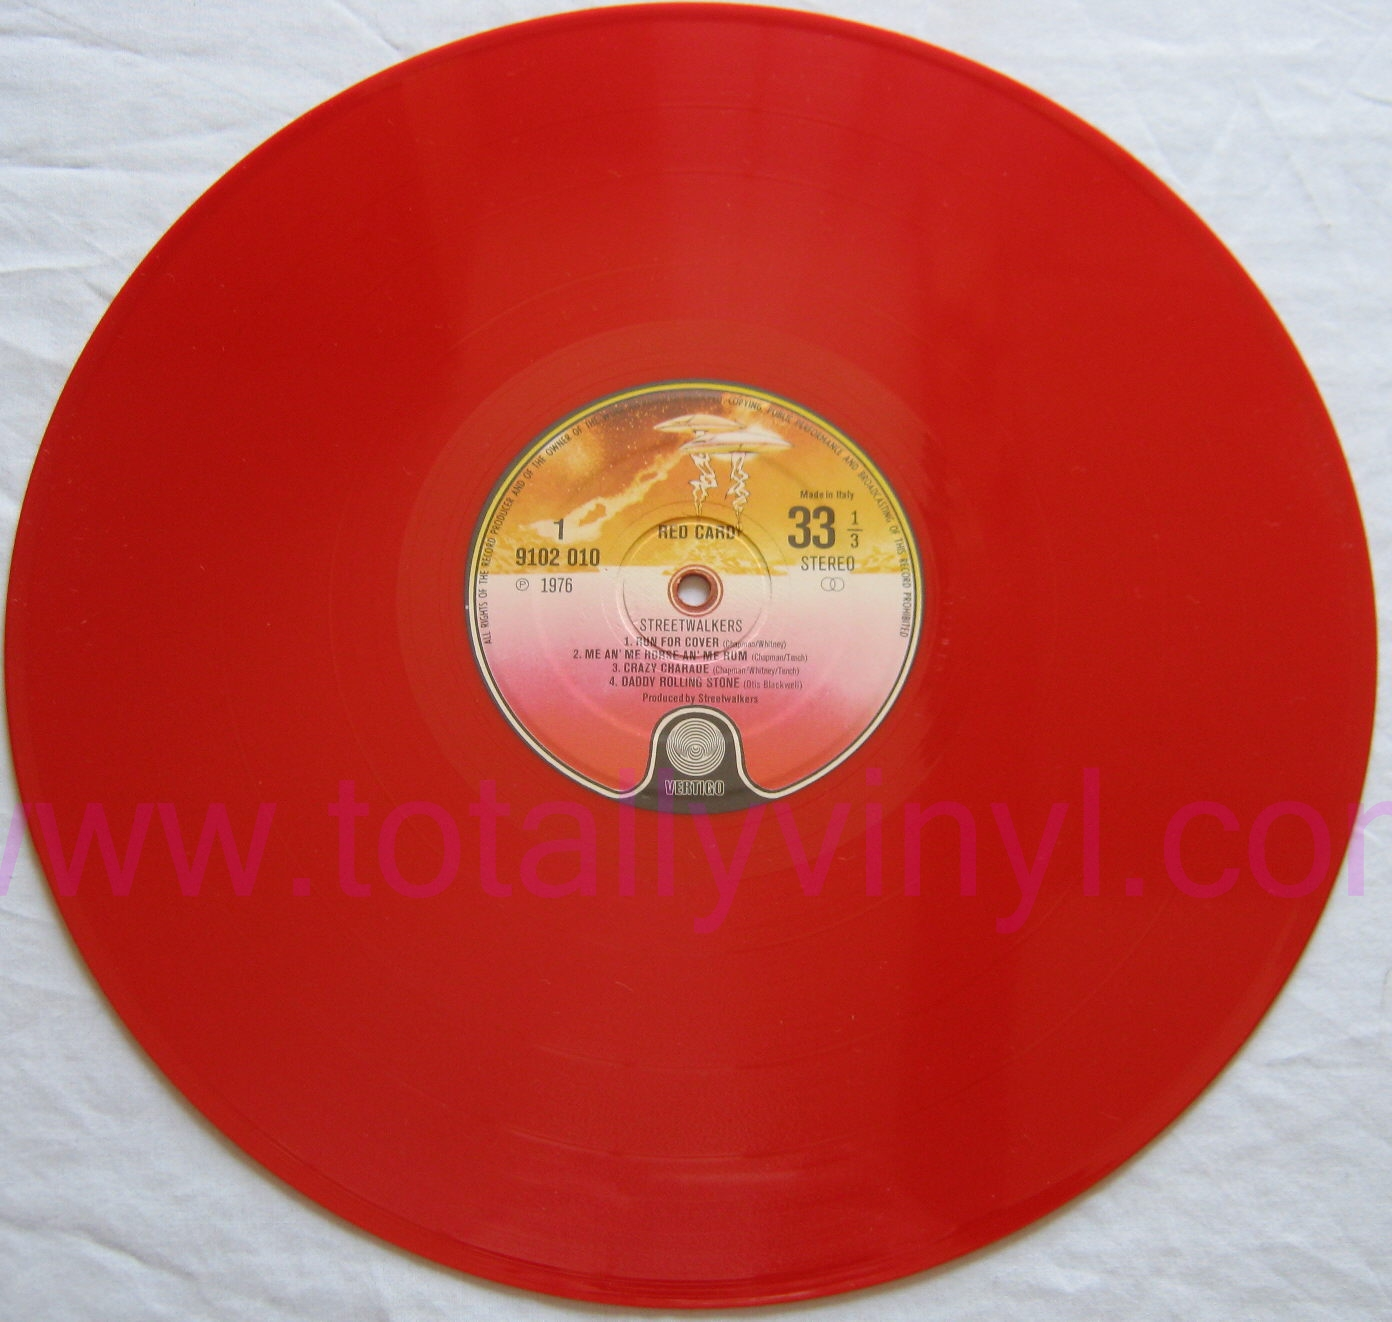 Totally Vinyl Records Streetwalkers Red Card Coloured